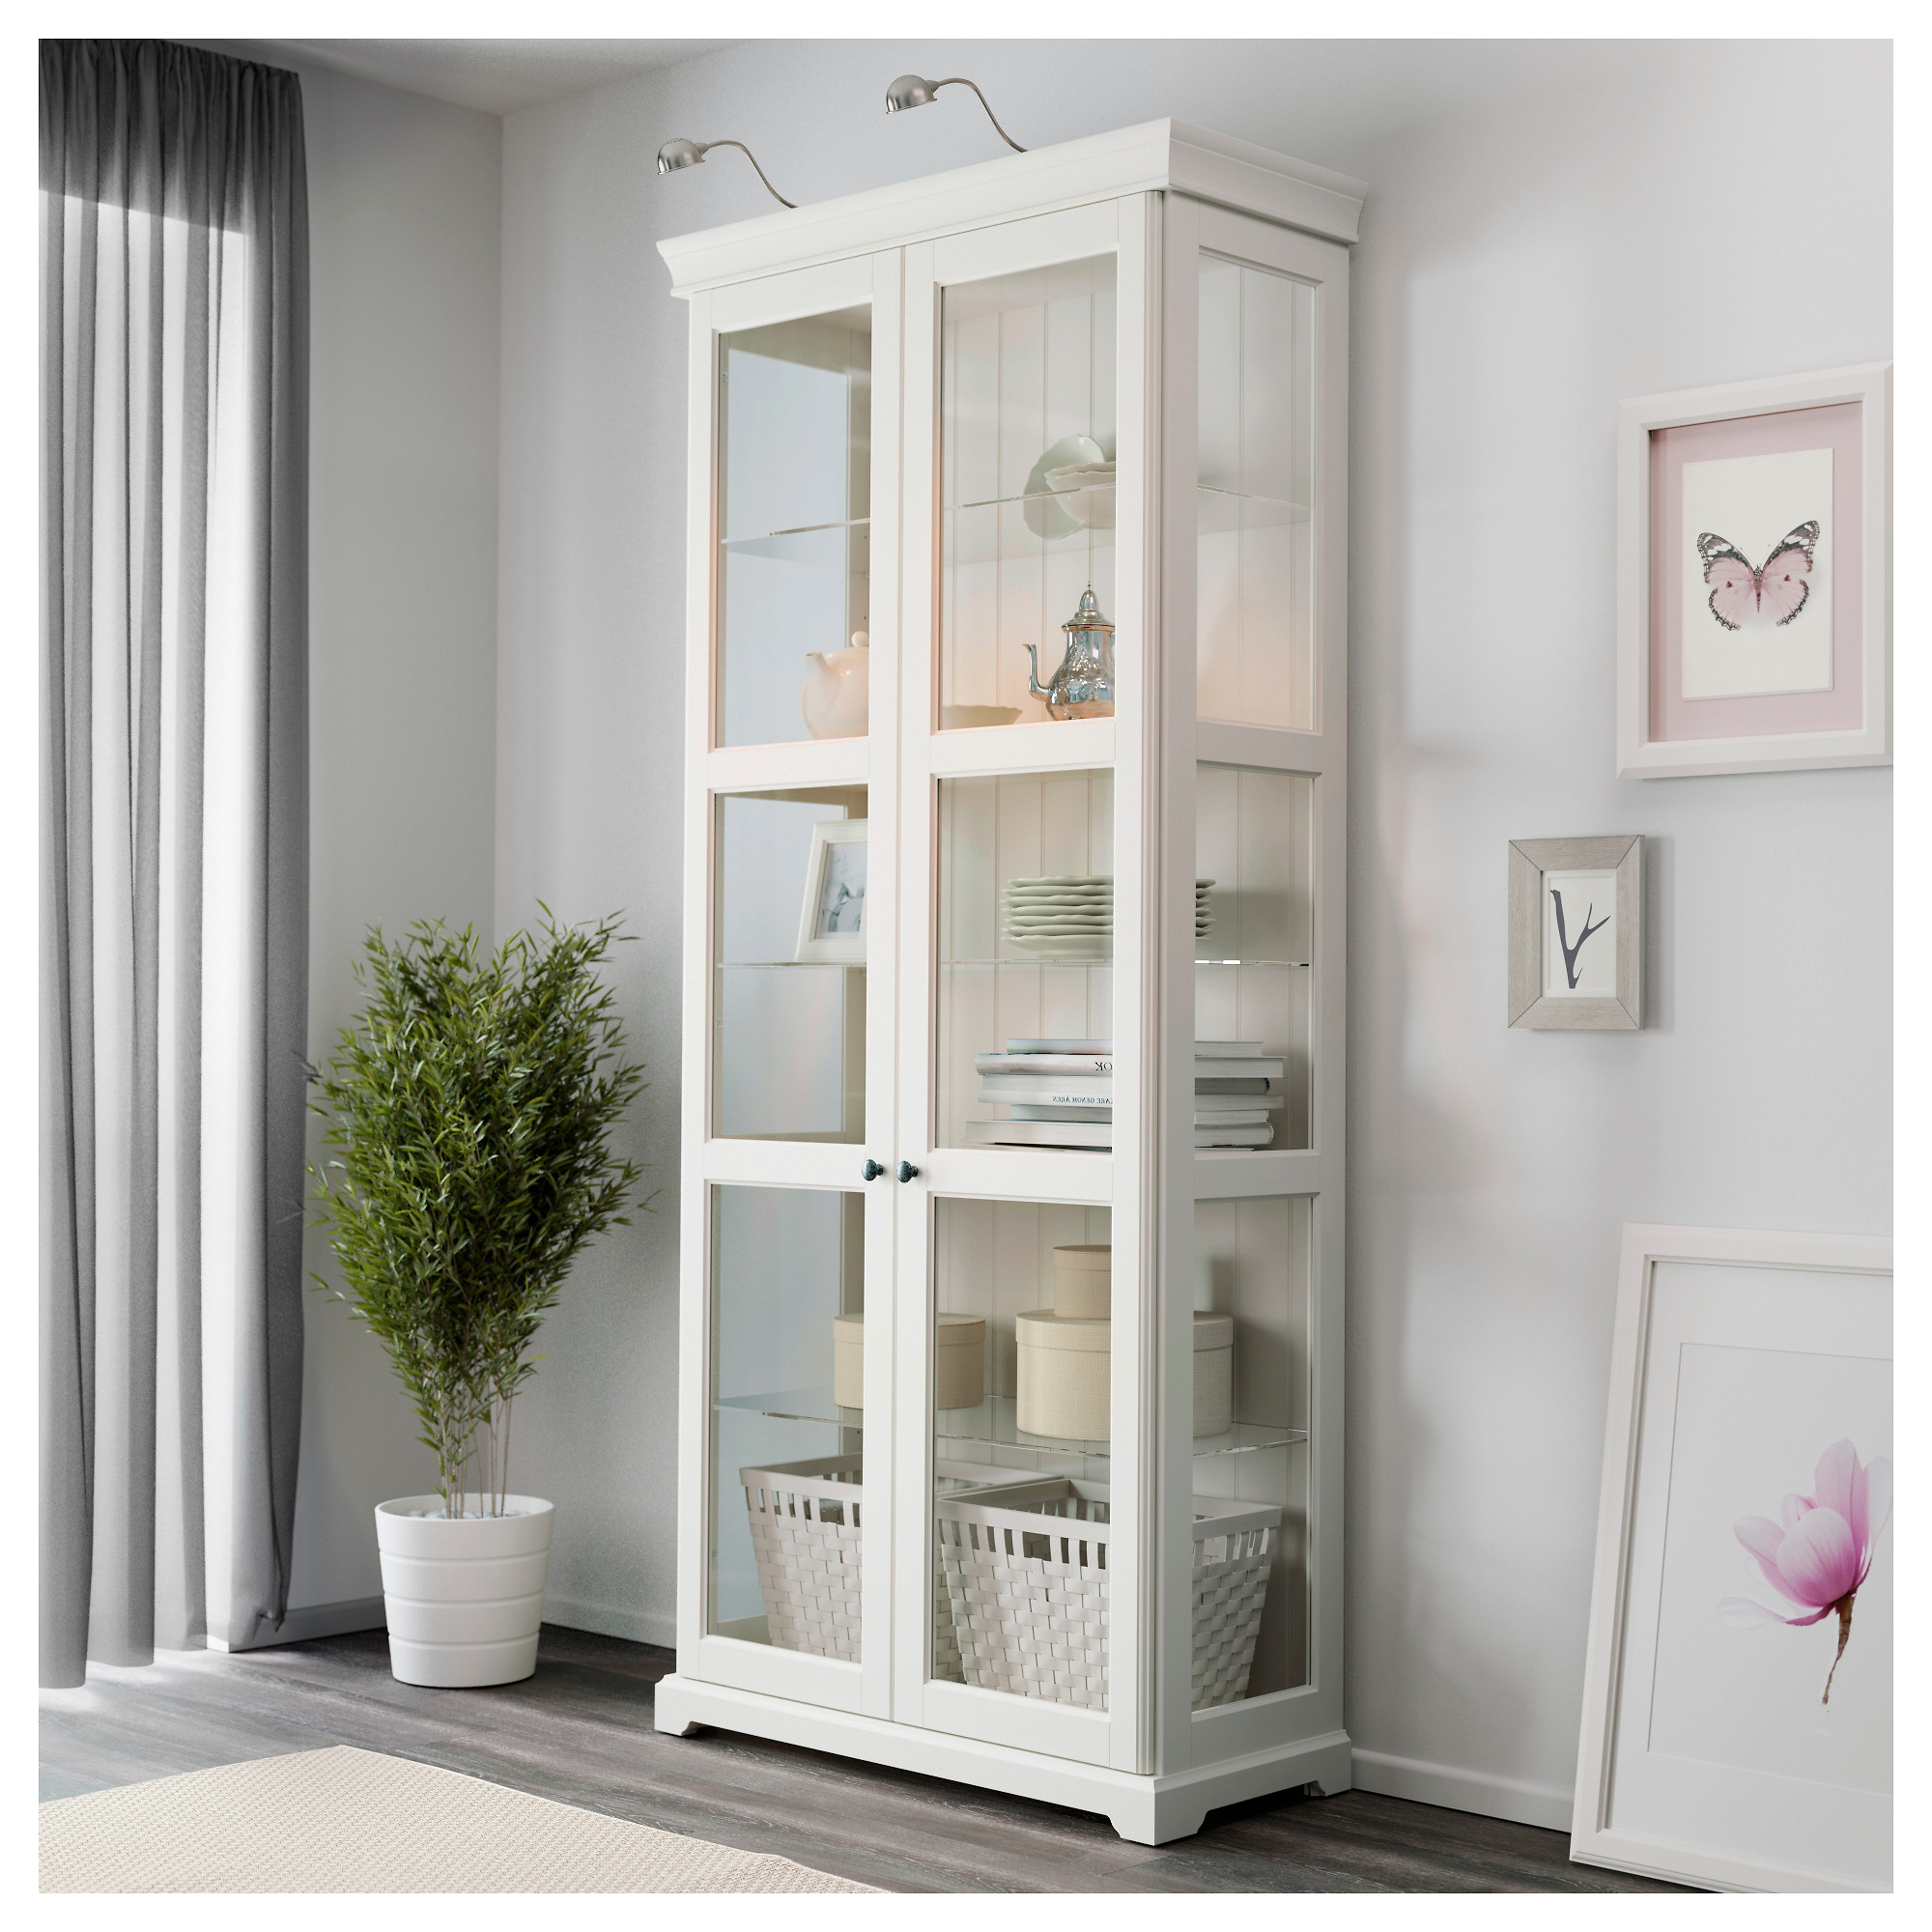 Dish Display Cabinet Liatorp Glass Door Cabinet White 37 3 4x84 1 4 Ikea